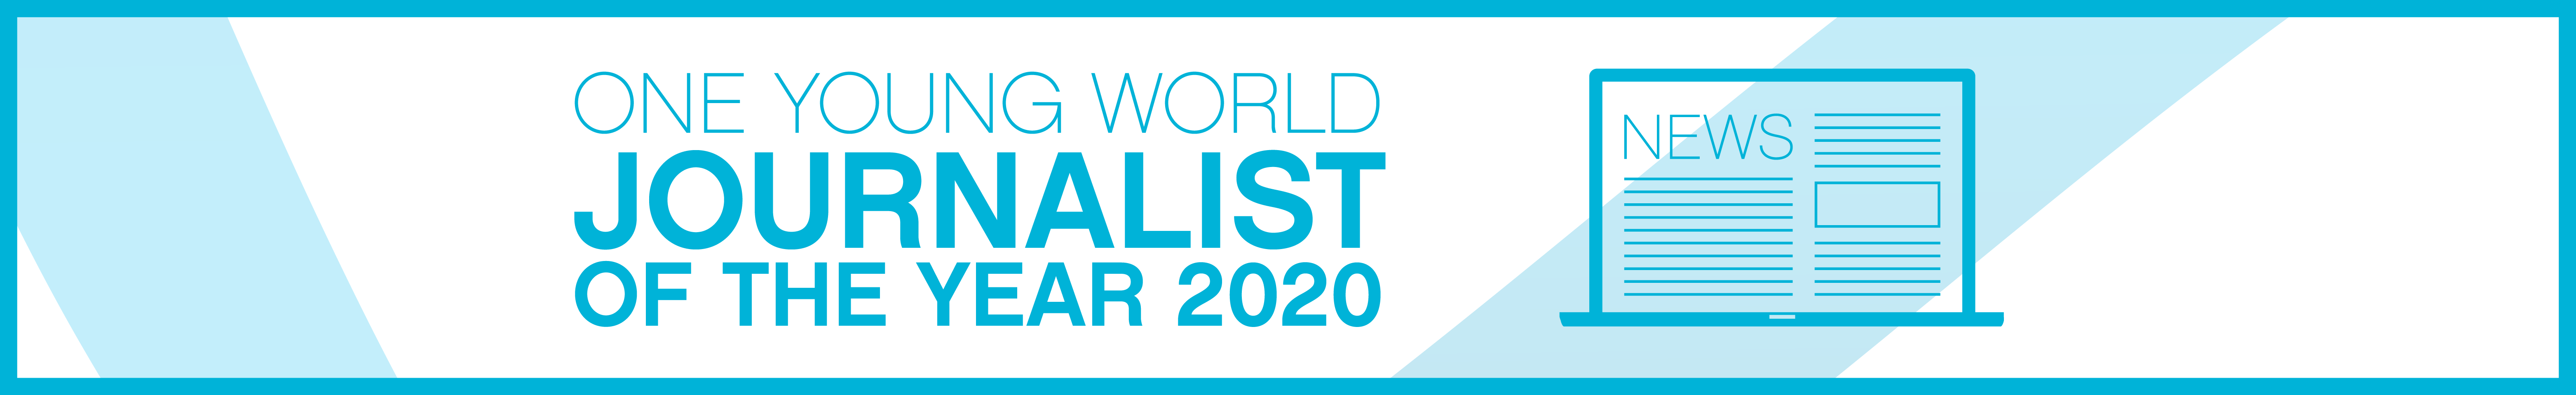 OYW Journalist of the Year 2020 Winners